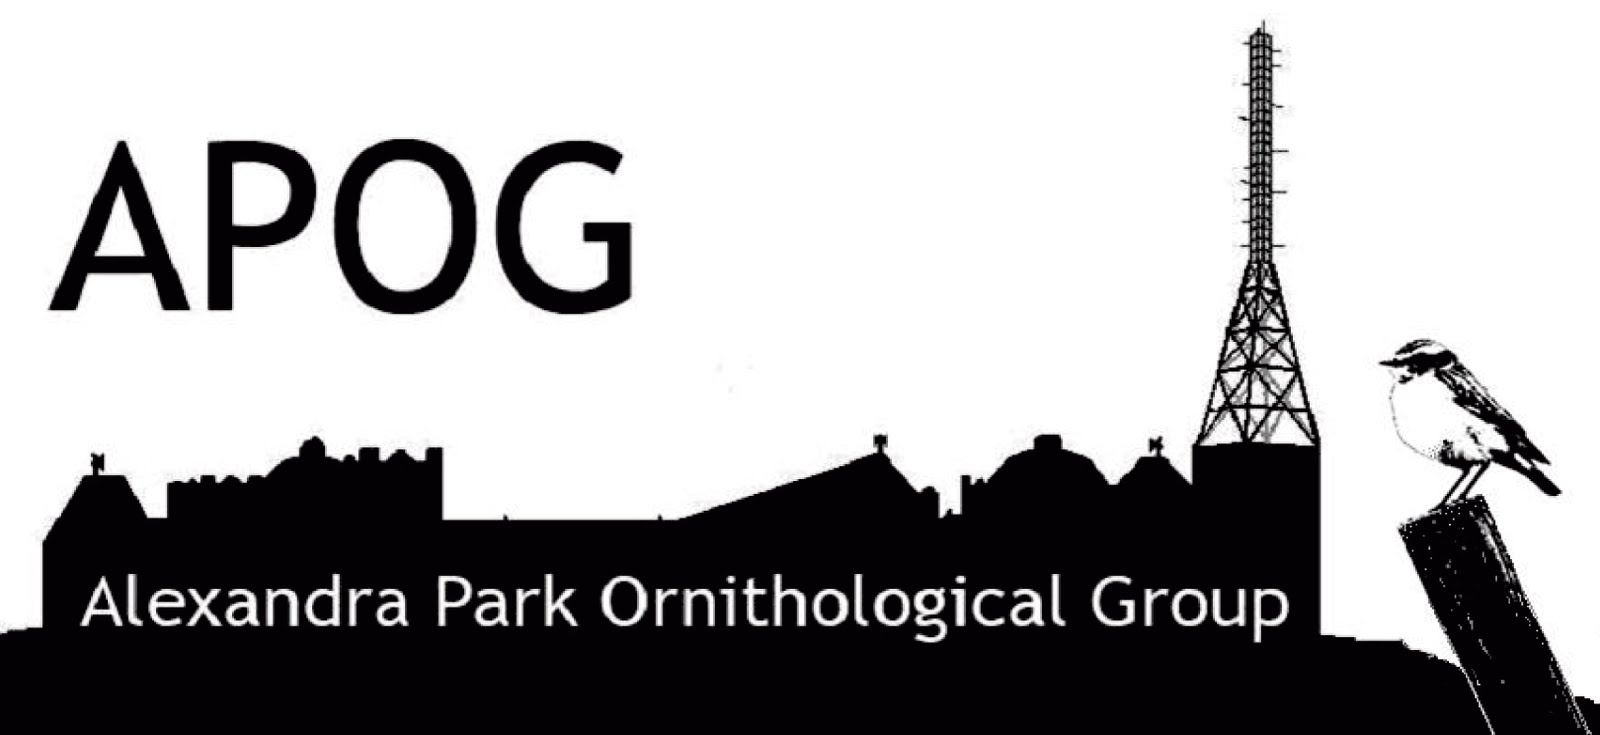 Alexandra Park Ornithological Group